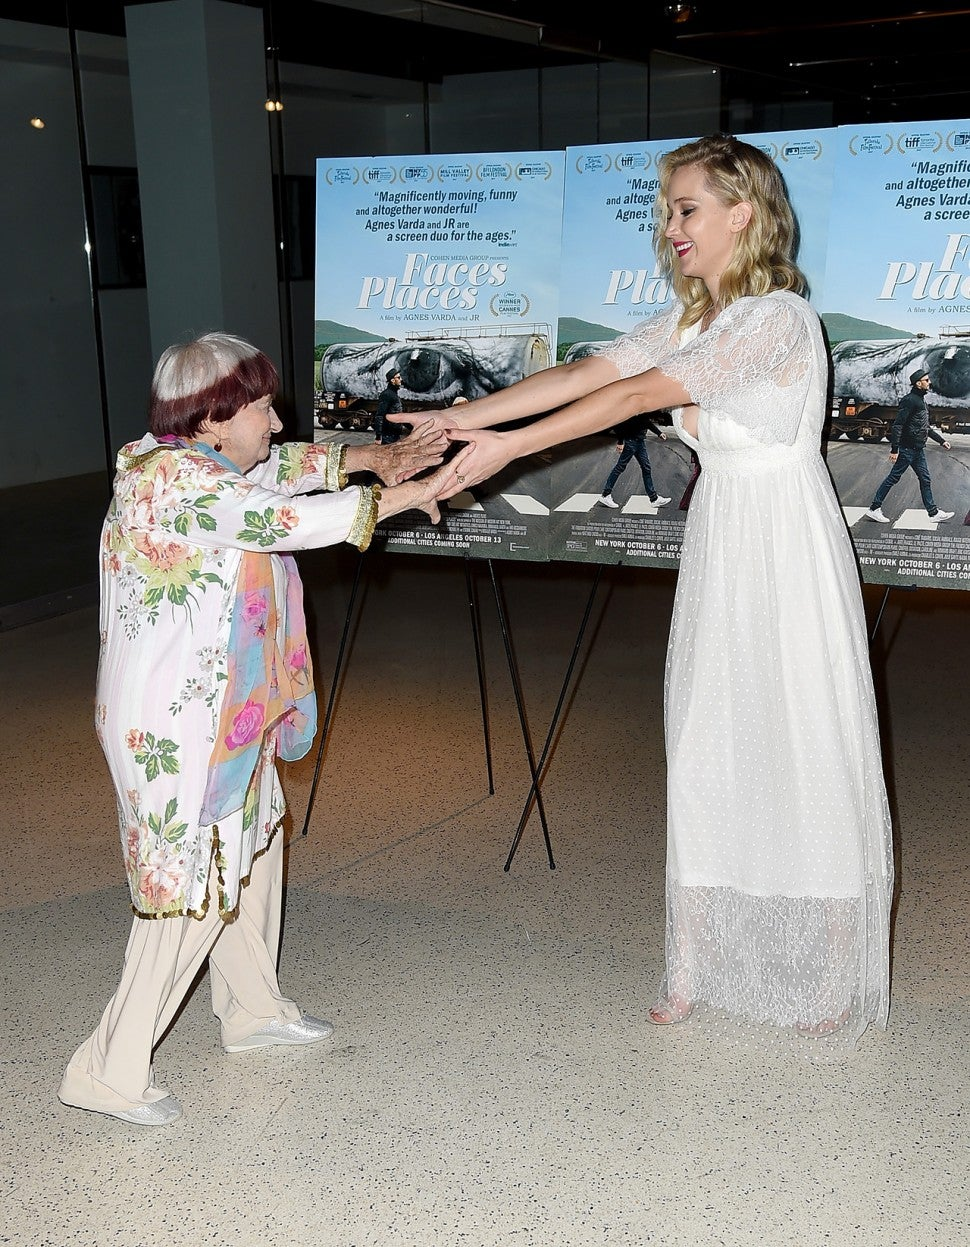 Jennifer Lawrence dances with Agnes Varda